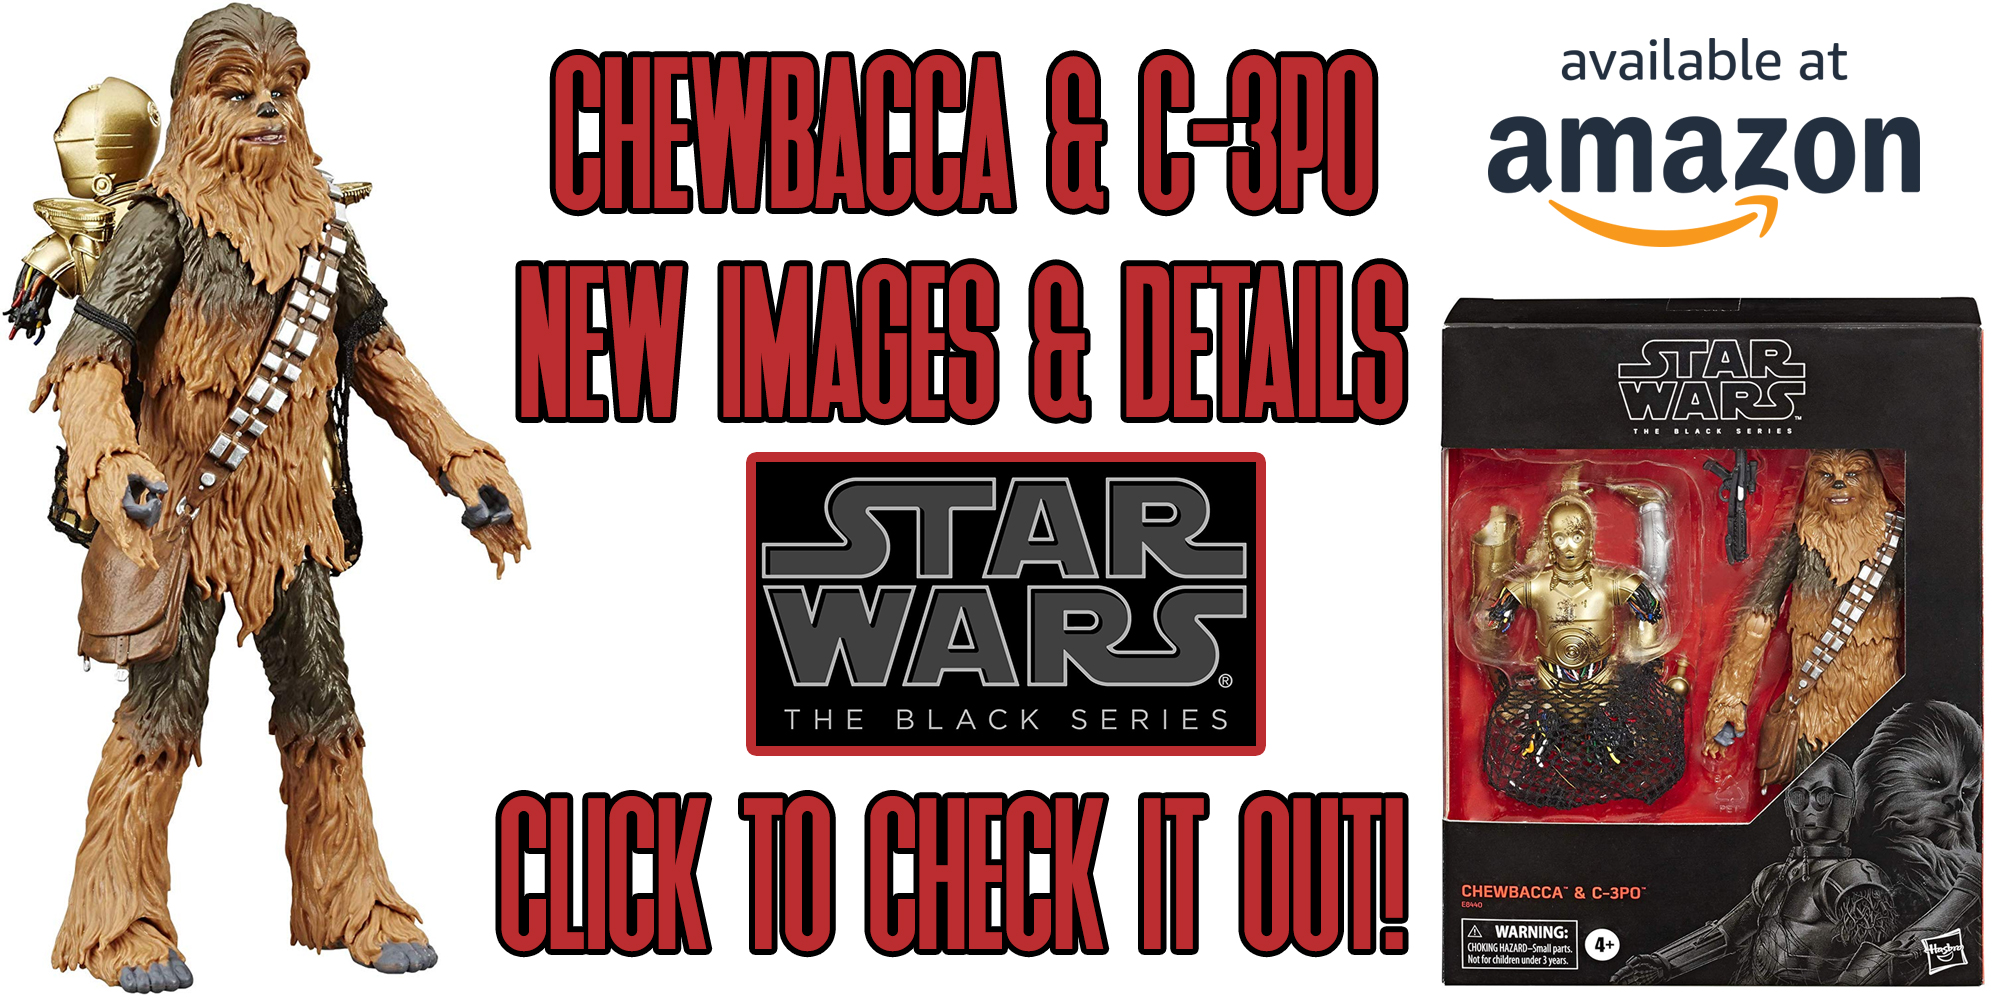 Black Series C-3PO and Chewbacca